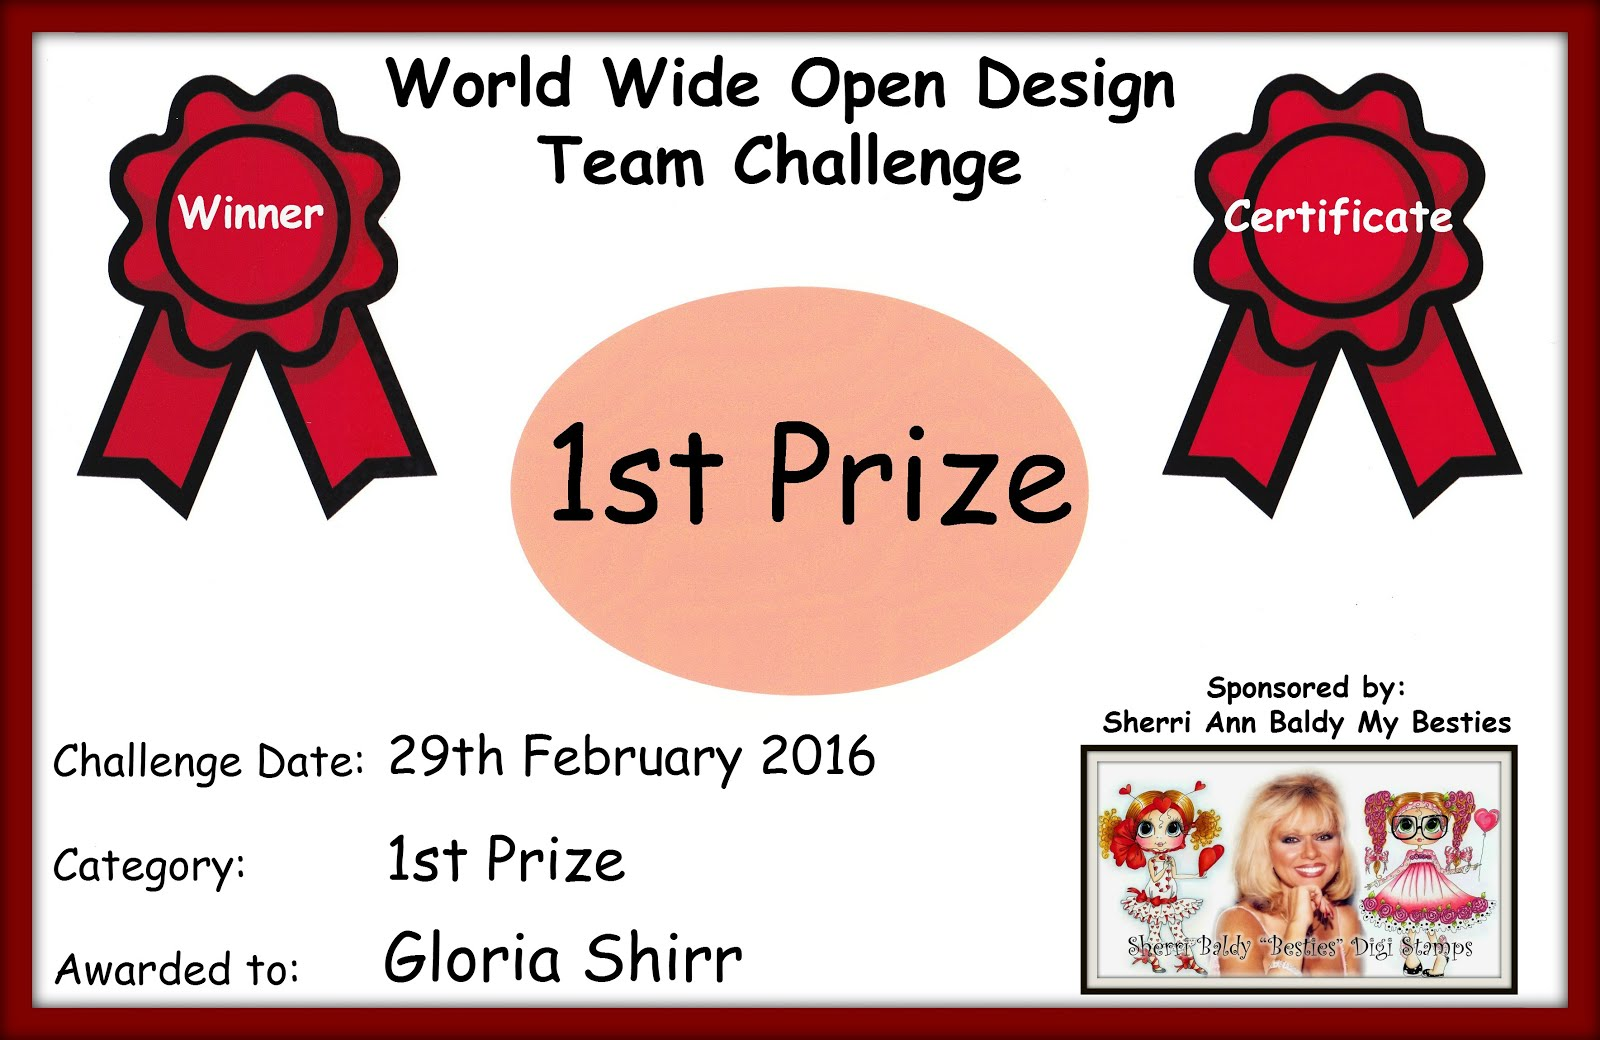 Winner of World Wide Open Design Team Challenge